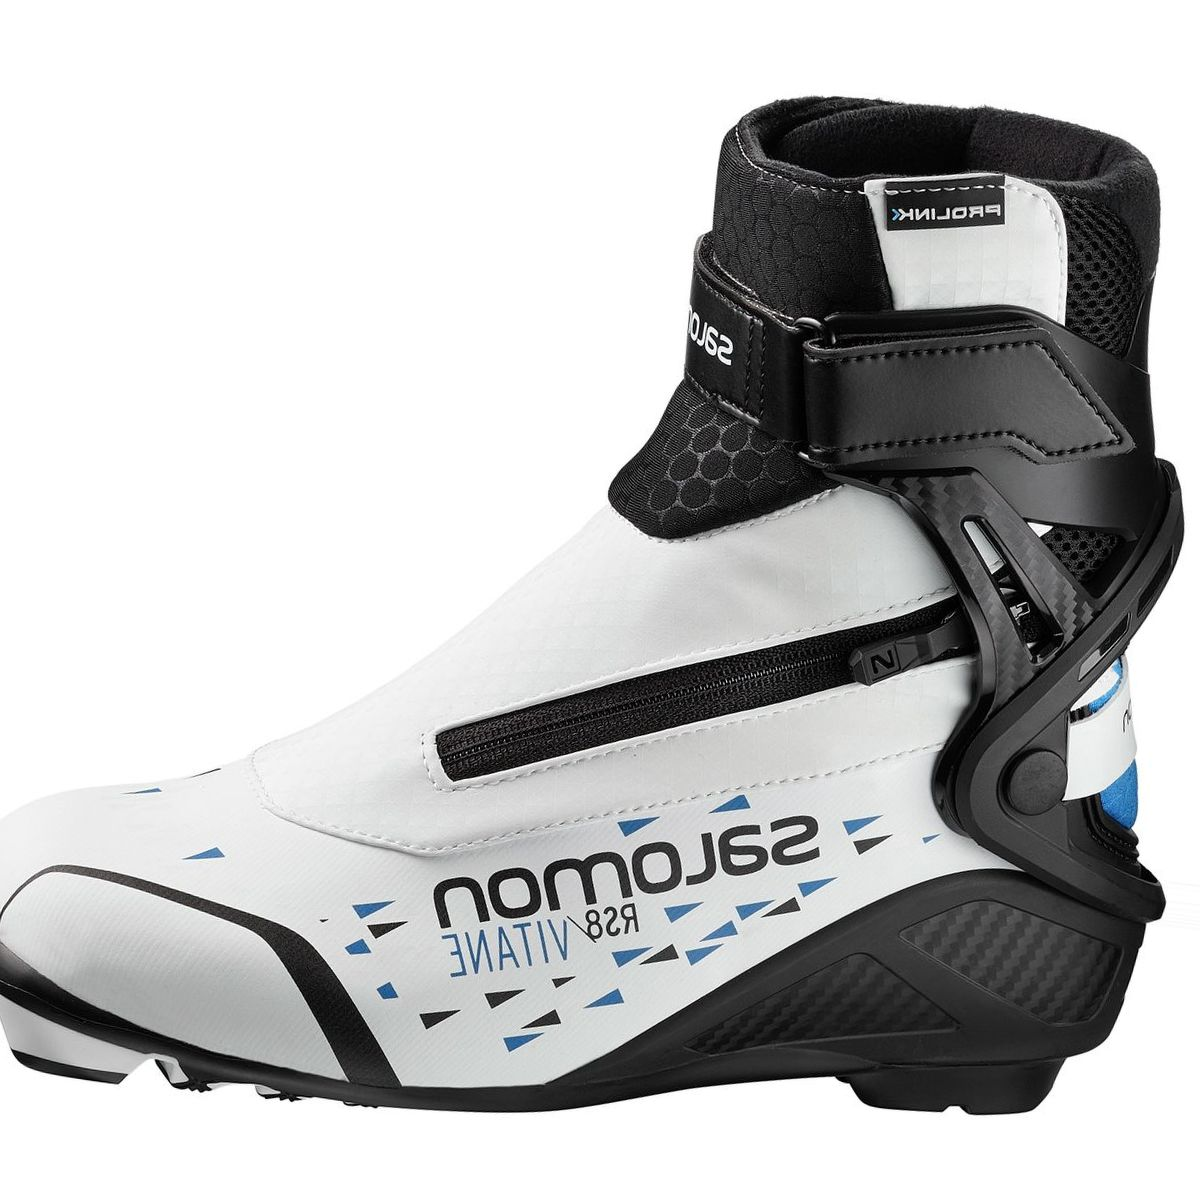 Salomon RS8 Vitane Prolink Skate Boot - Women's